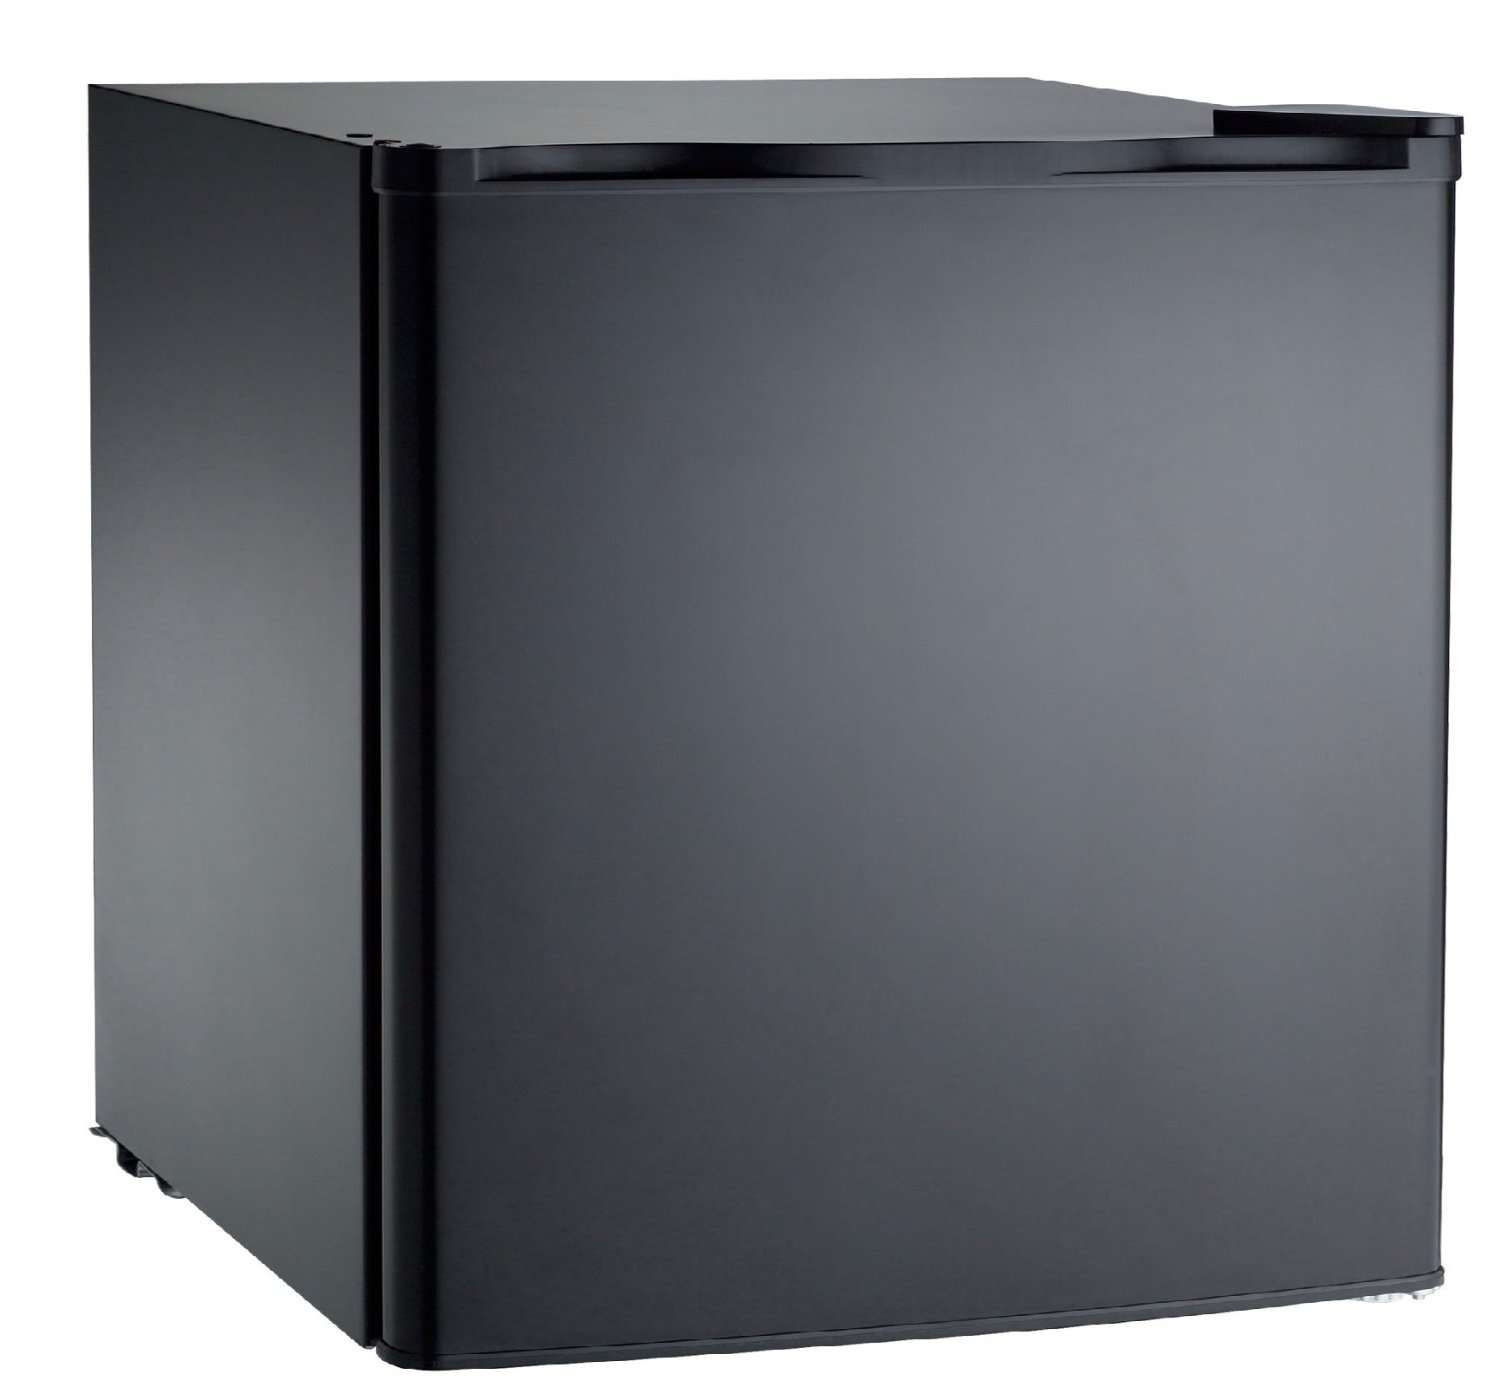 RCA- Igloo FR100-115 1.7 Cubic Foot Fridge, Black